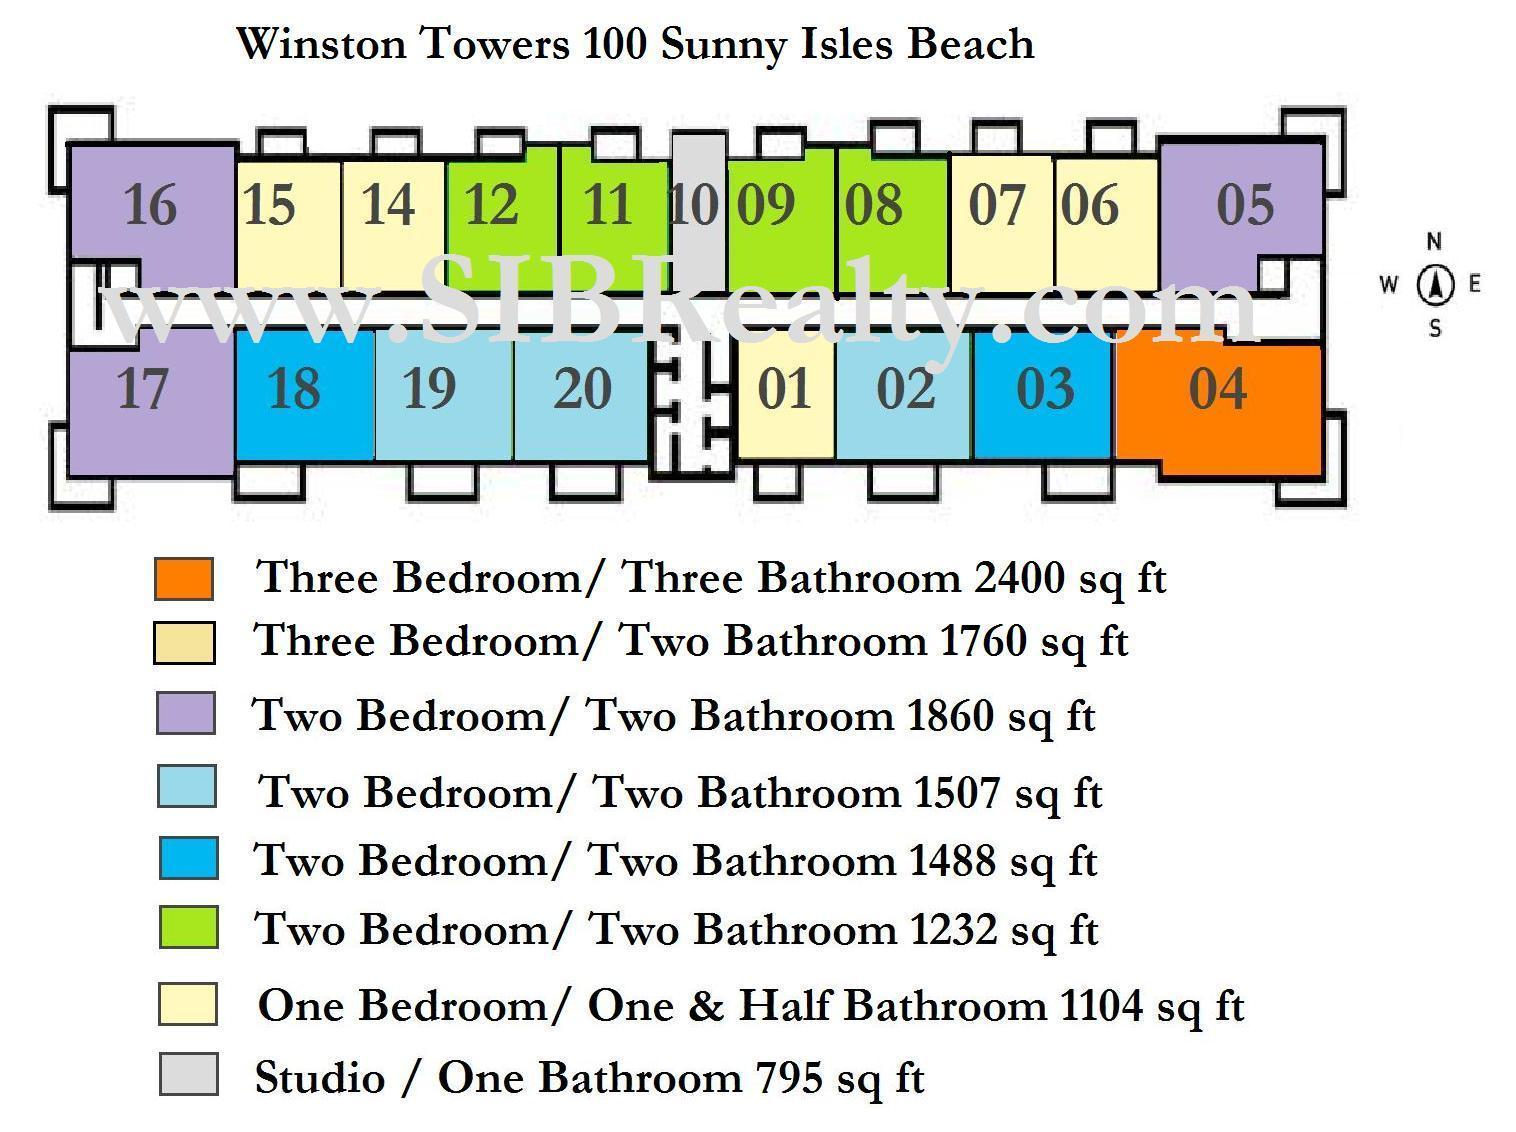 Winston Towers 100 Sunny Isles Beach Site Plan